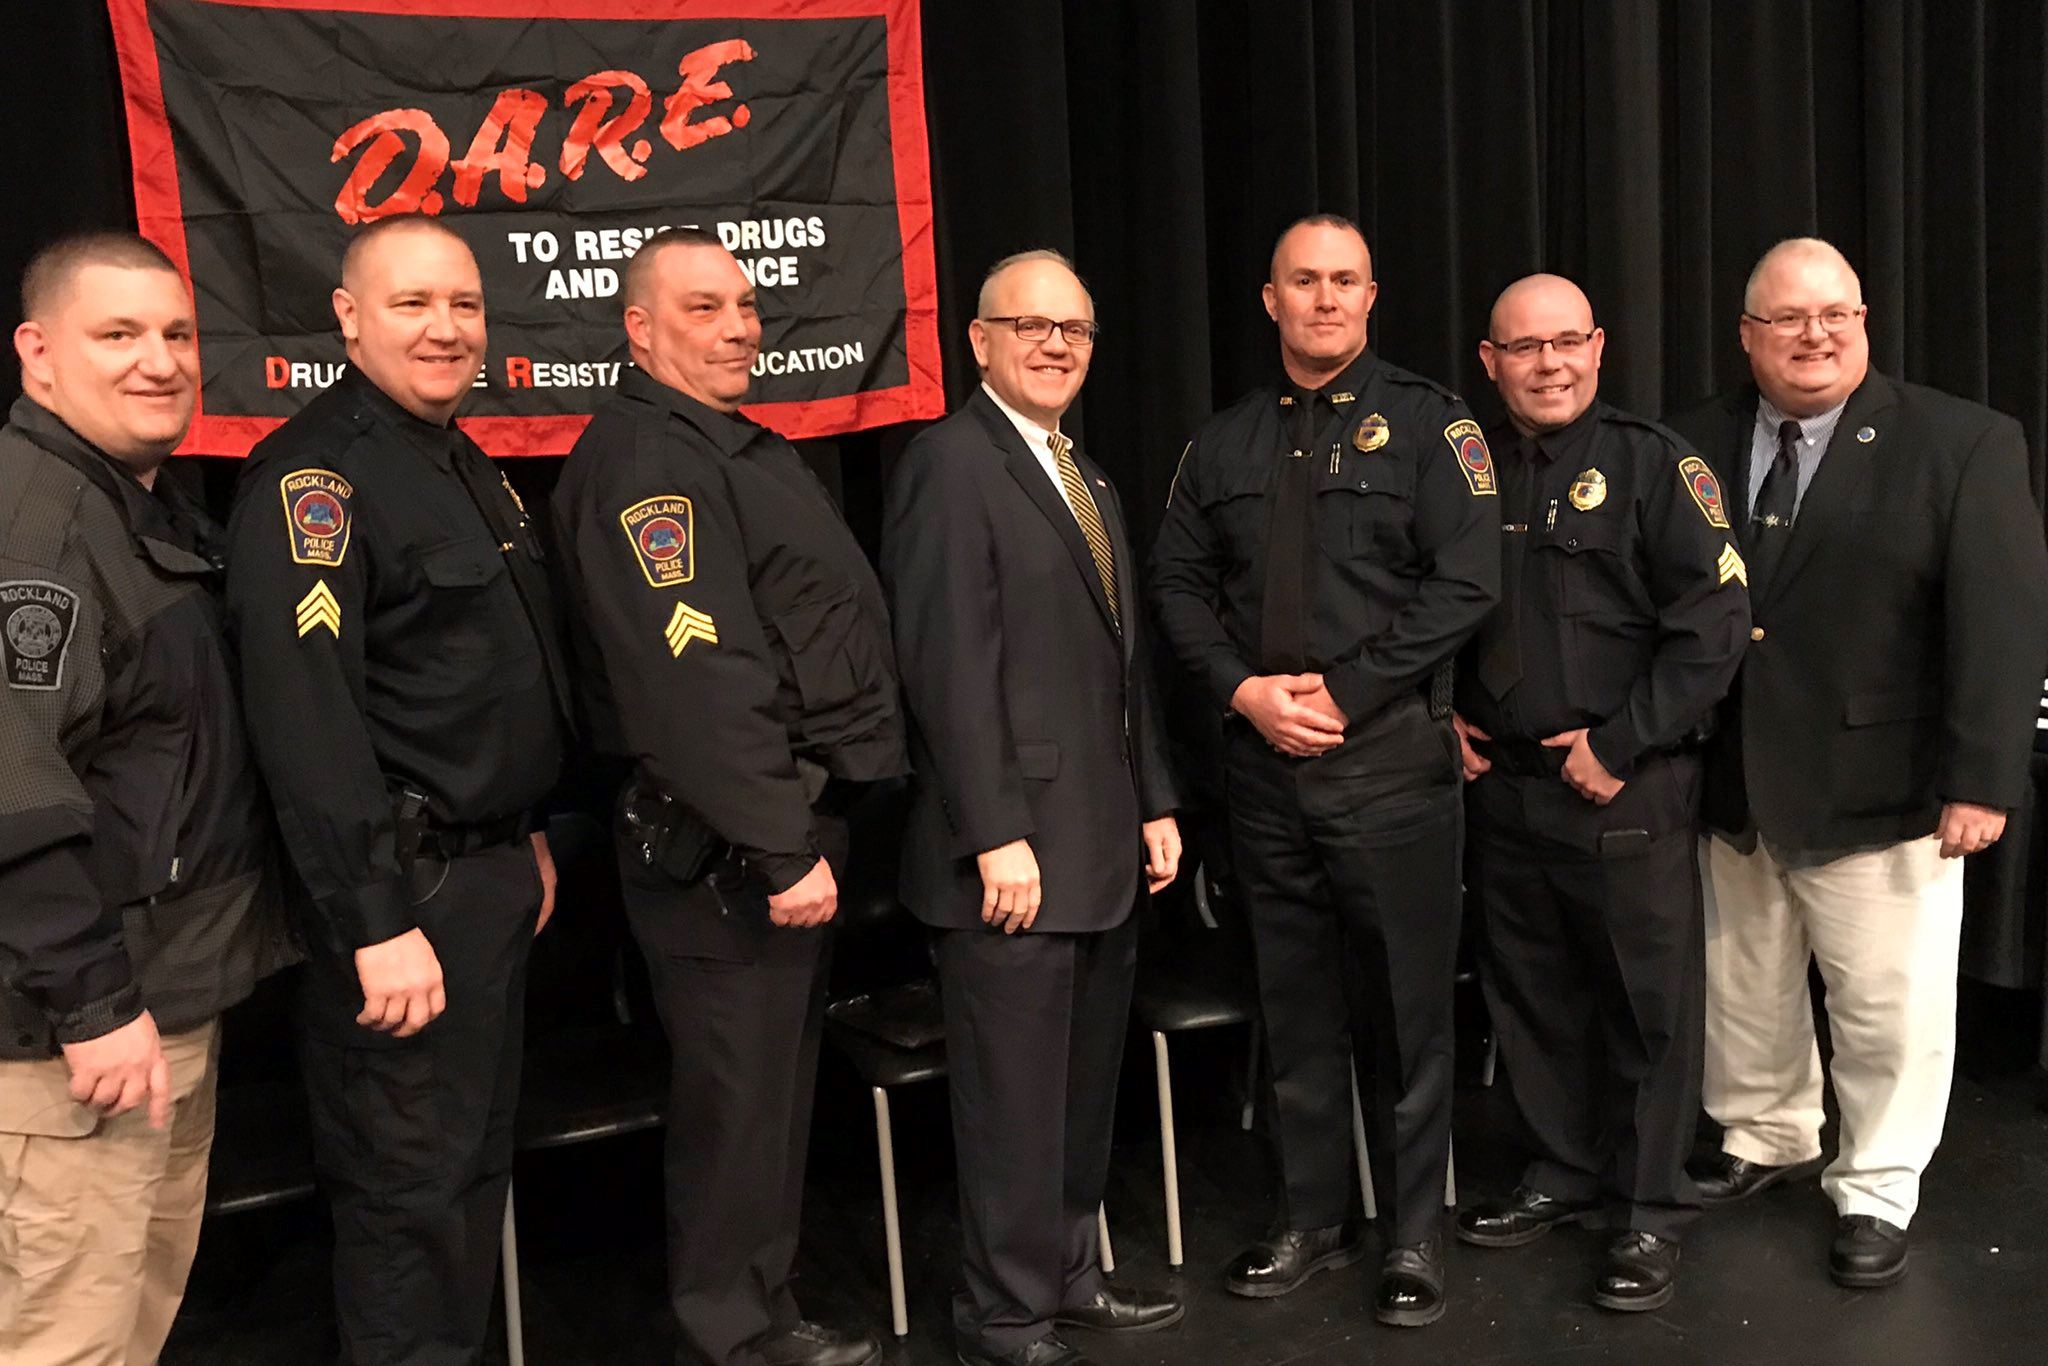 Officers at D.A.R.E Graduation 2020